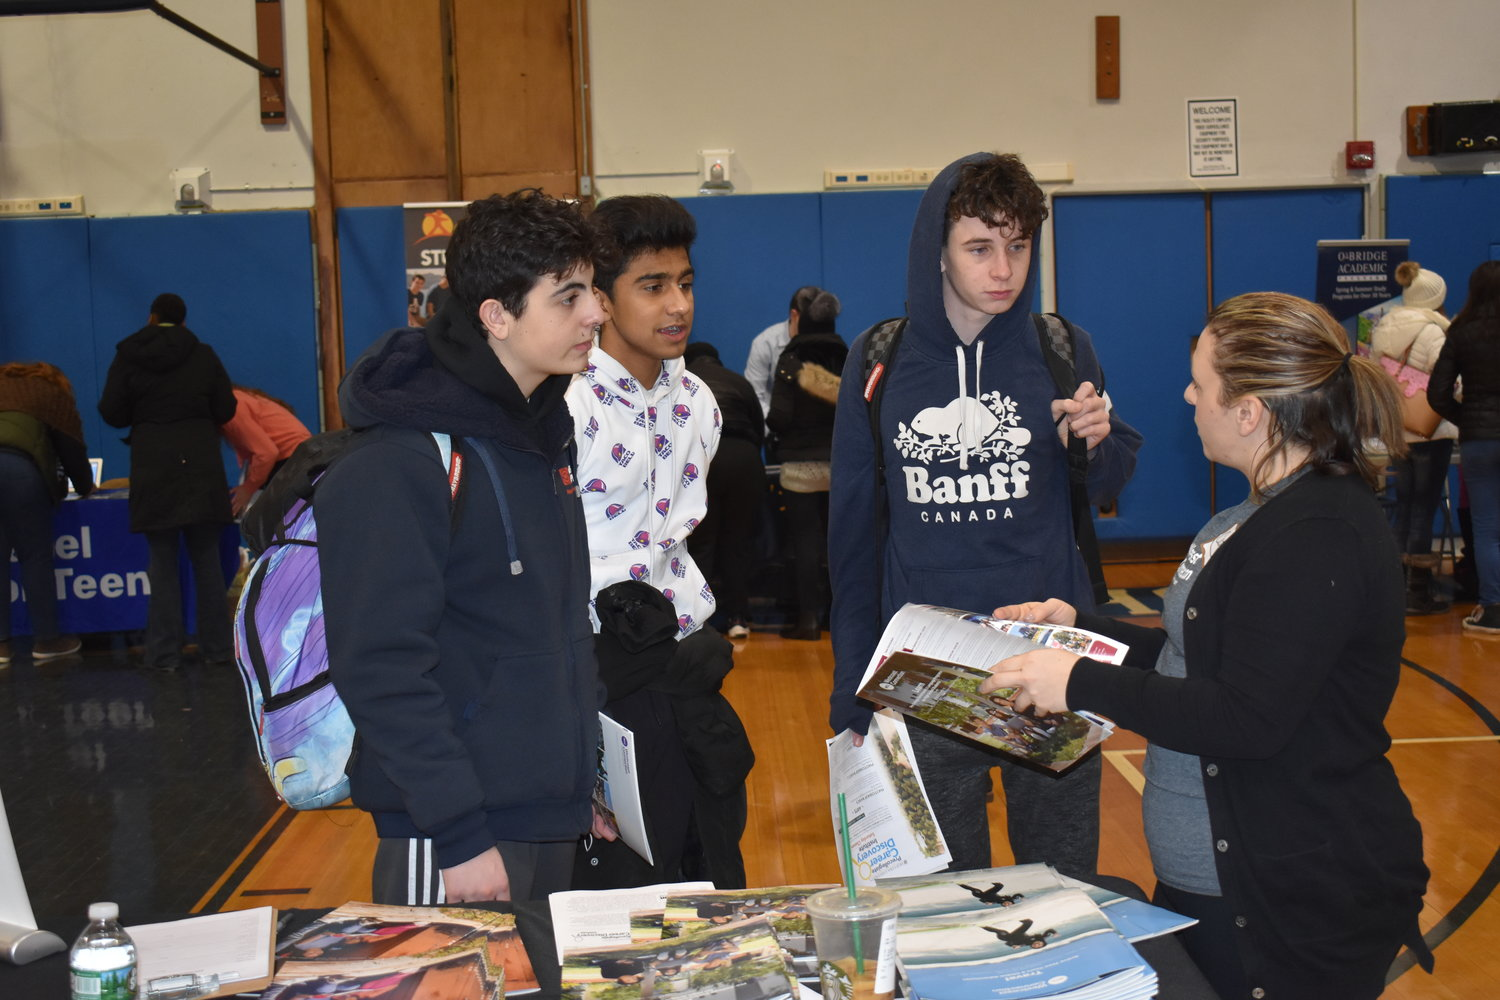 Ninth-graders Justin Shnayder, left, Bilaal Sadiq and Noah Tipipere discussed West Coast Connection, a student travel program, with Catherine Montera, a trip director.